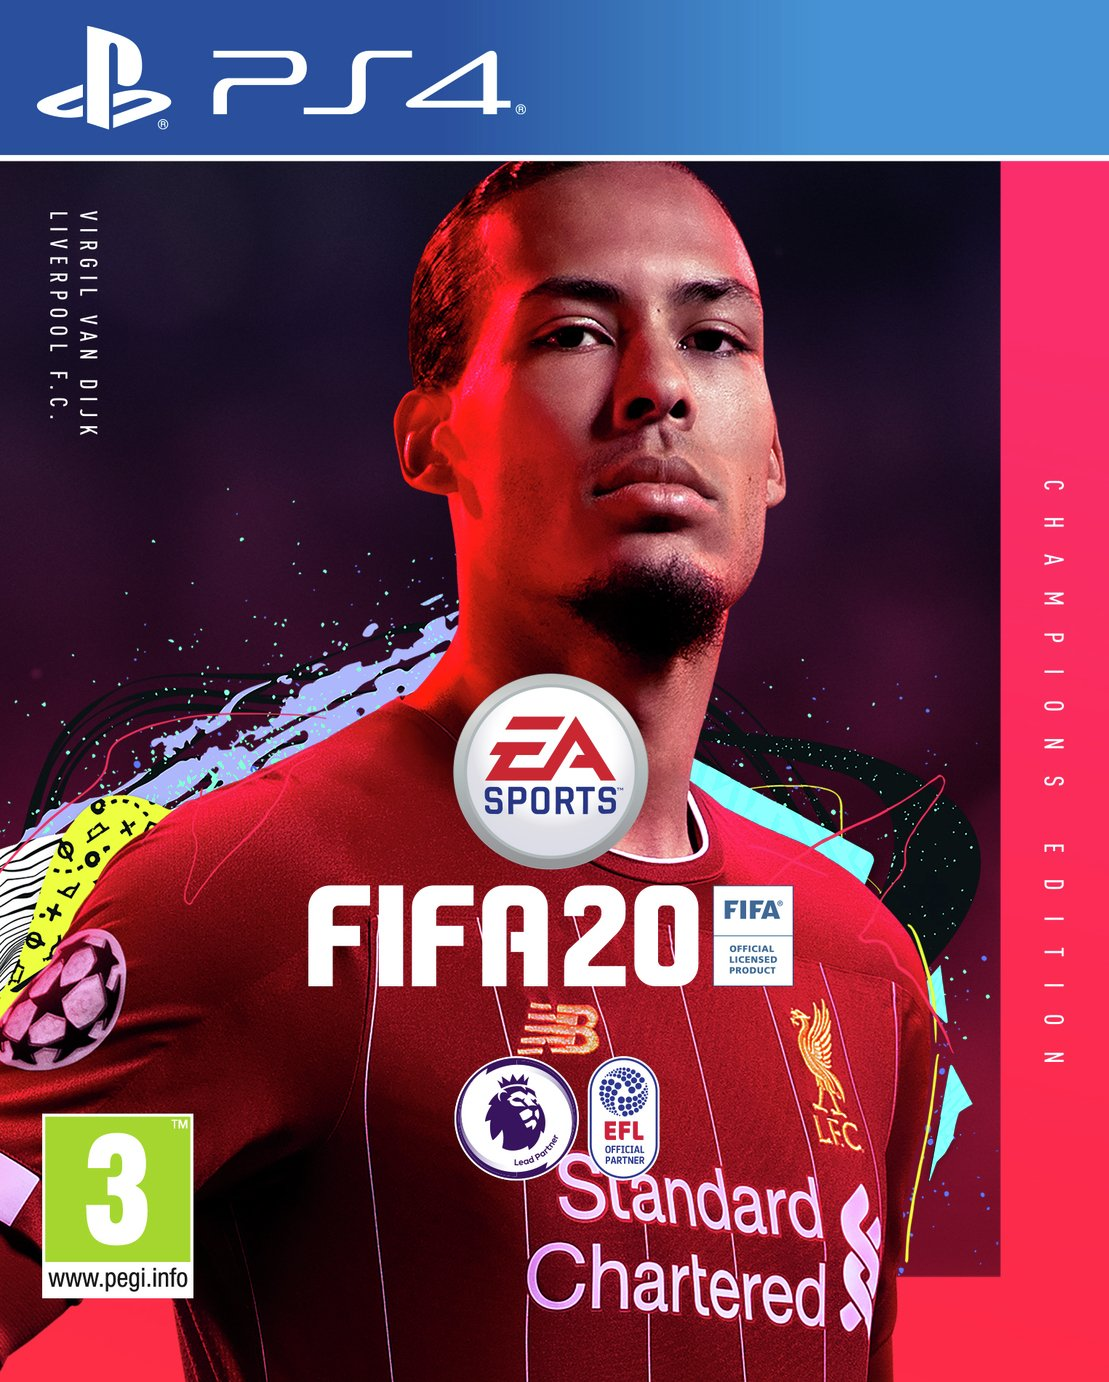 FIFA 20 Champions Edition PS4 Pre-Order Game